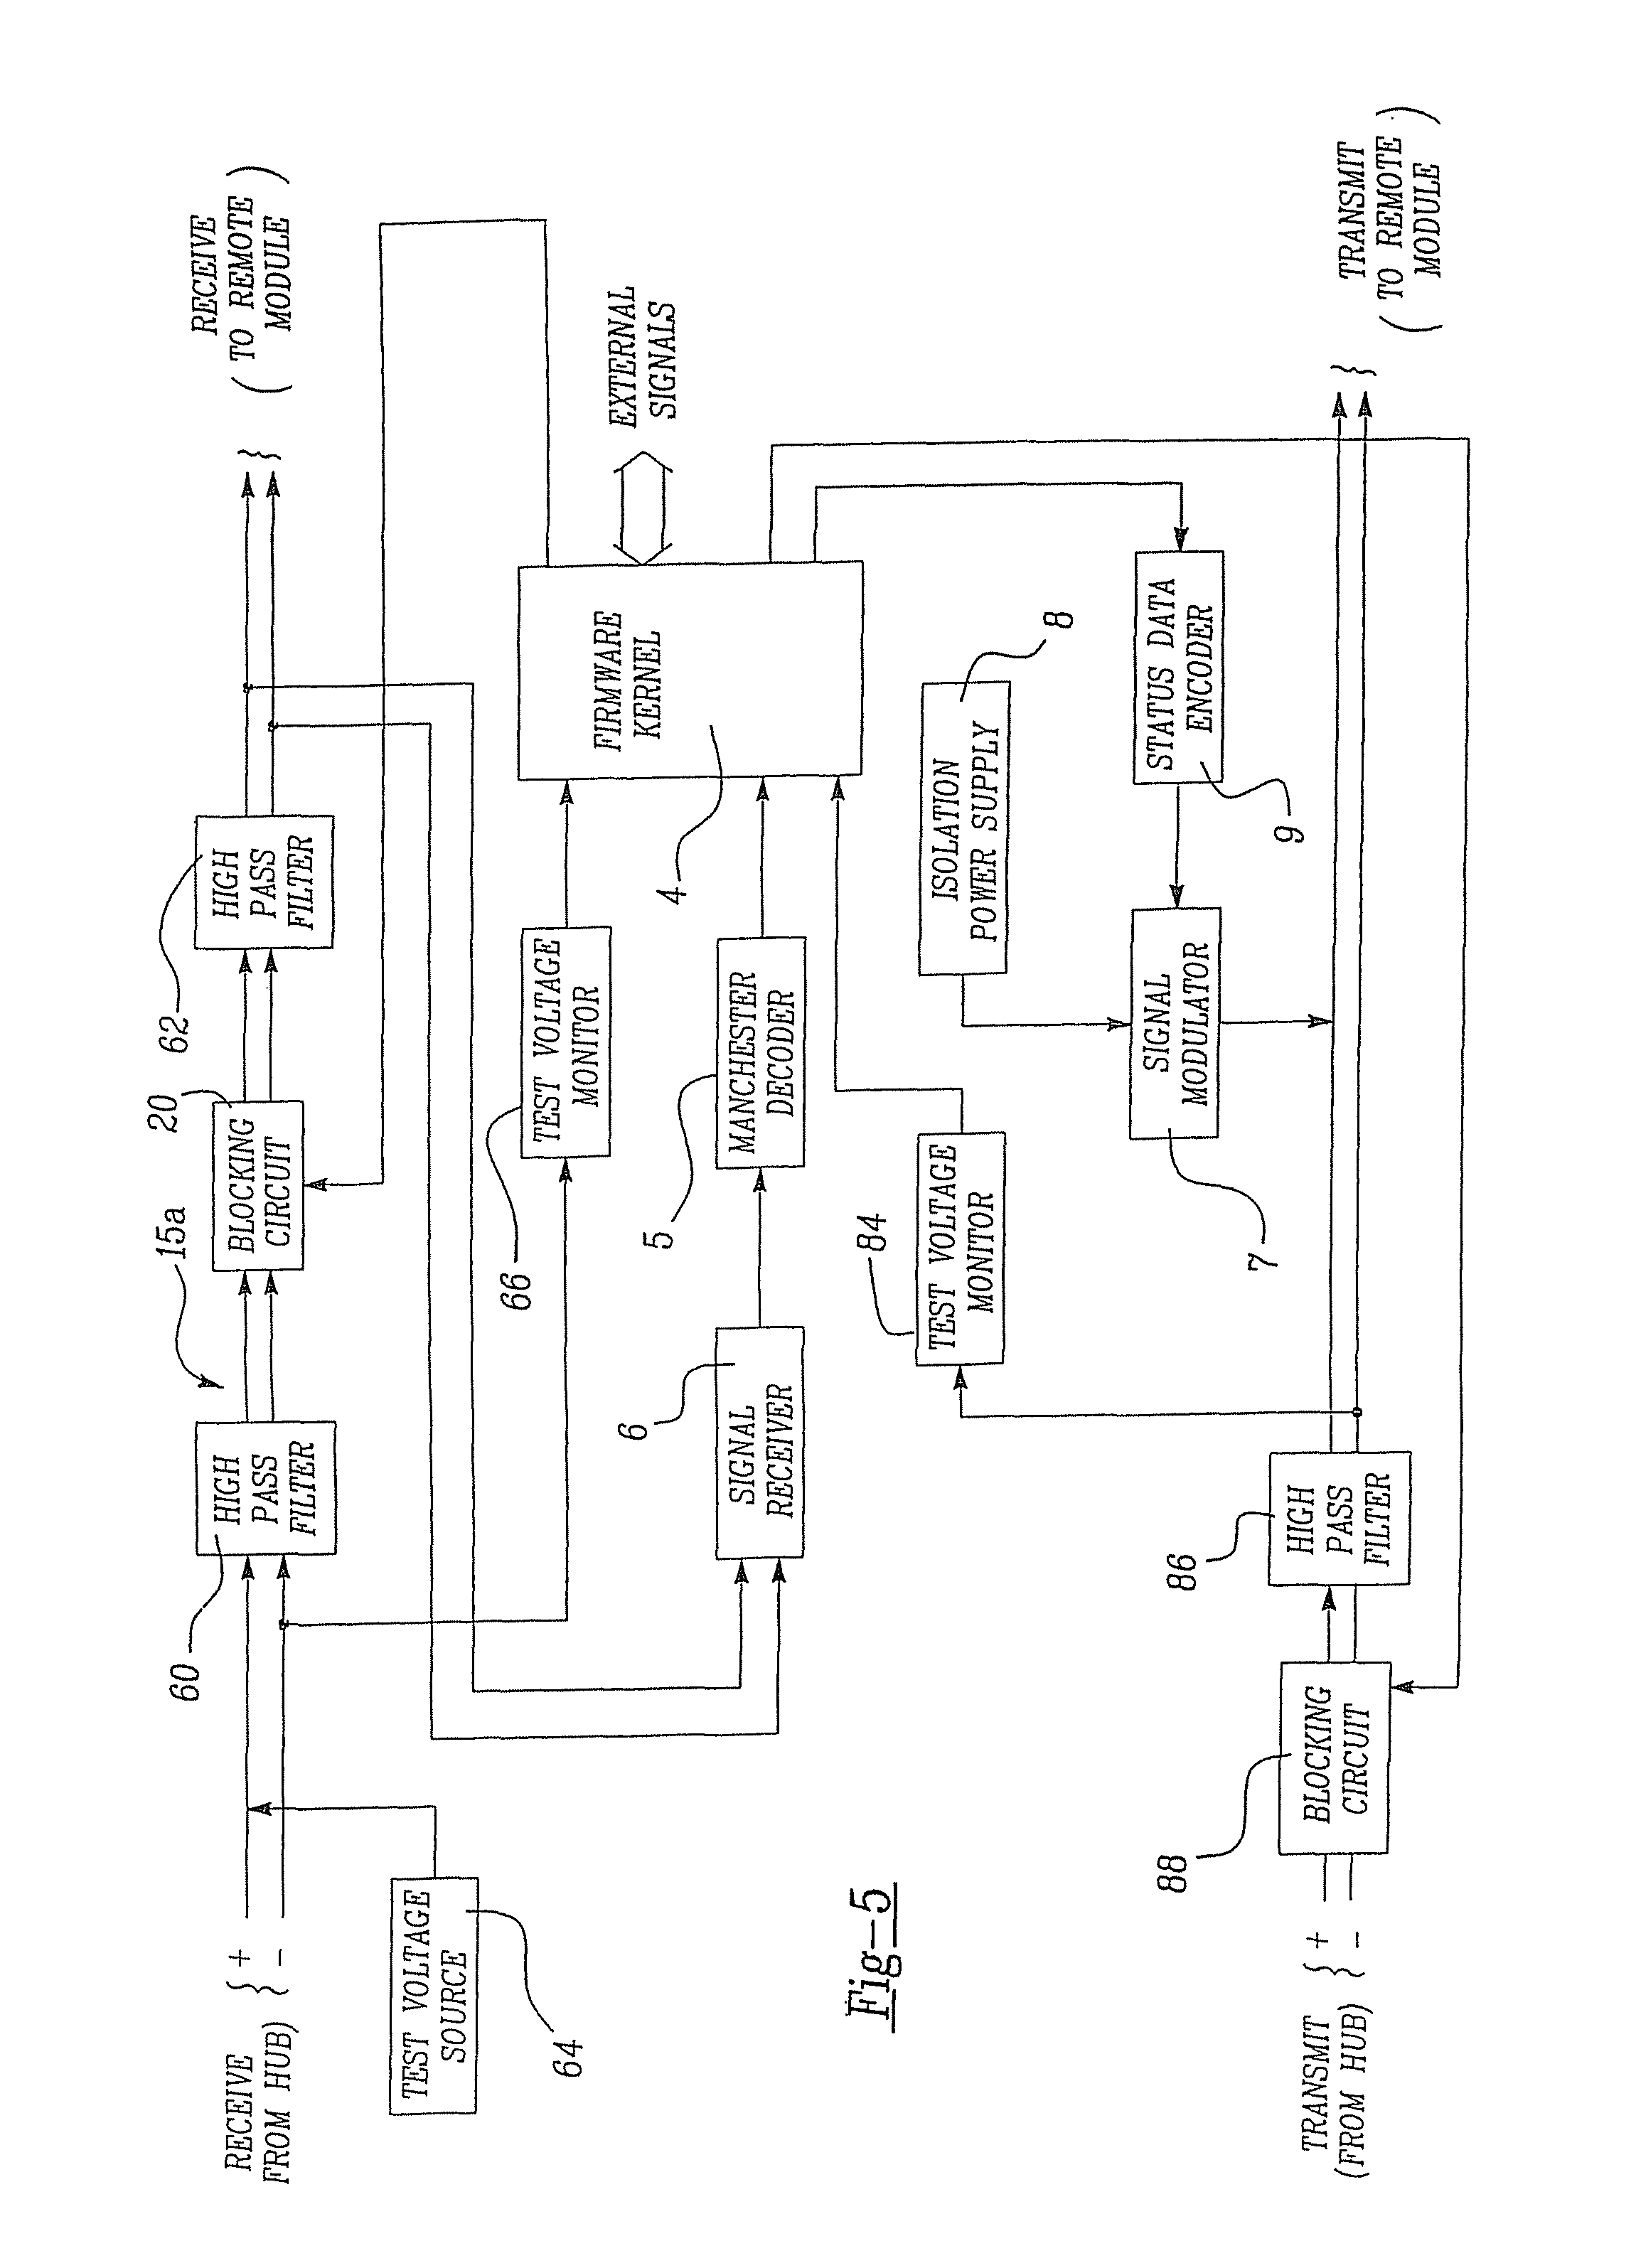 Patent Us 8155012 B2 54 Kb Png For An Integrated Circuit The Apparatus Receiving